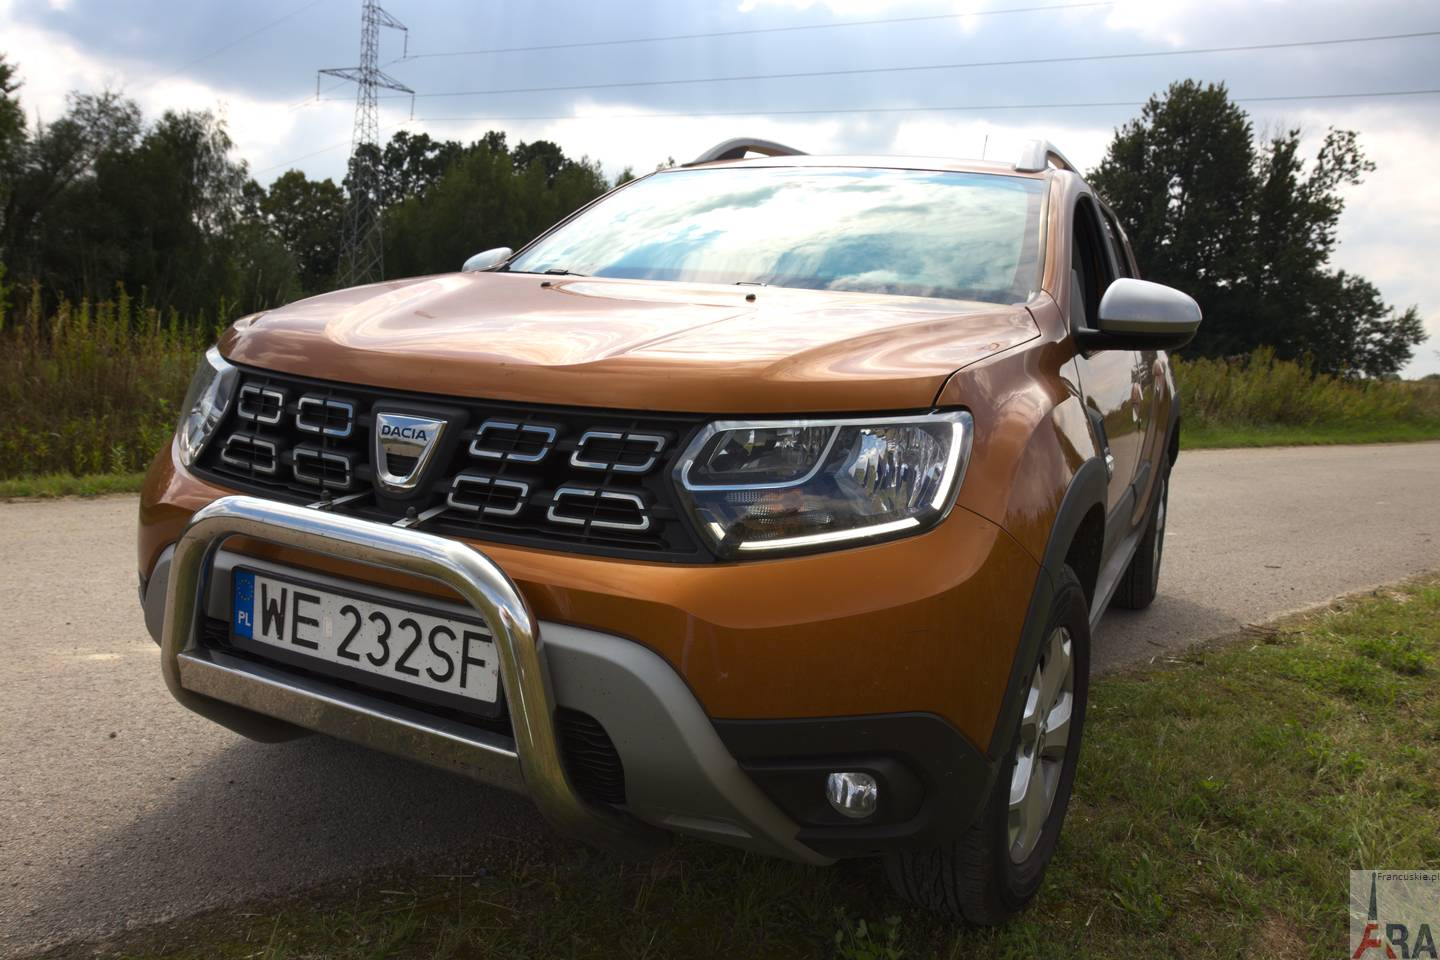 nowa dacia duster z silnikiem 1 3 tce o mocy 150 km ju w polsce. Black Bedroom Furniture Sets. Home Design Ideas